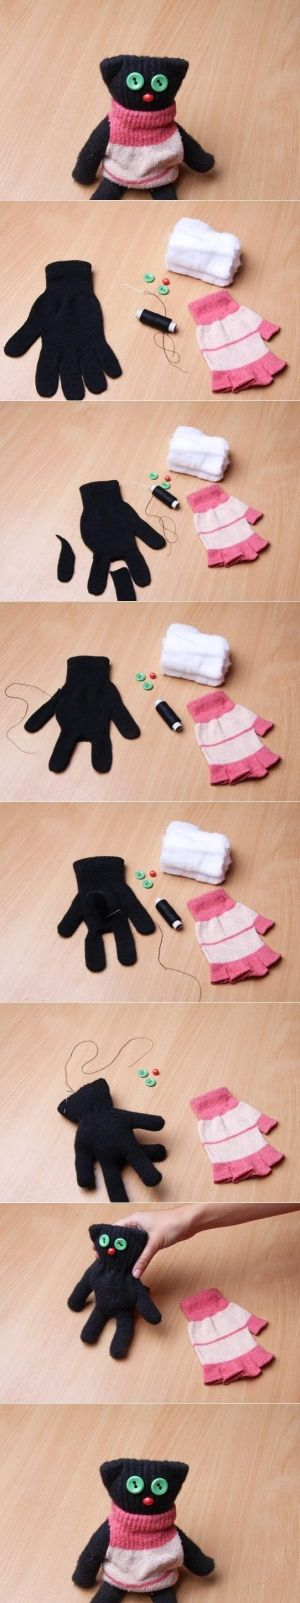 DIY Gloves Doll DIY Gloves Doll by diyforever